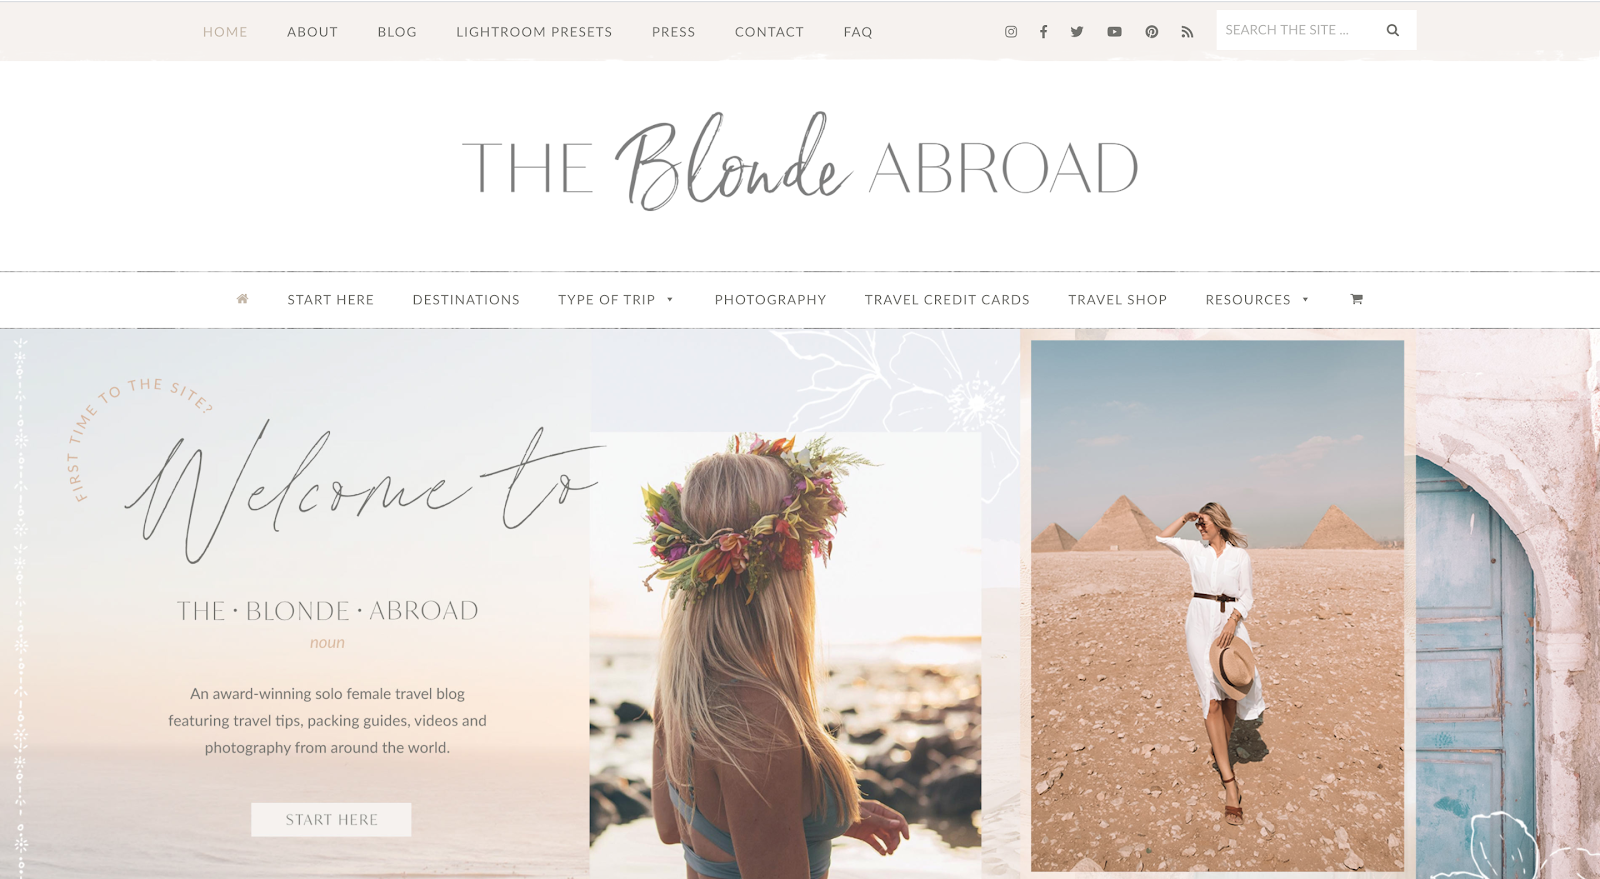 The Blonde Abroad blog interface